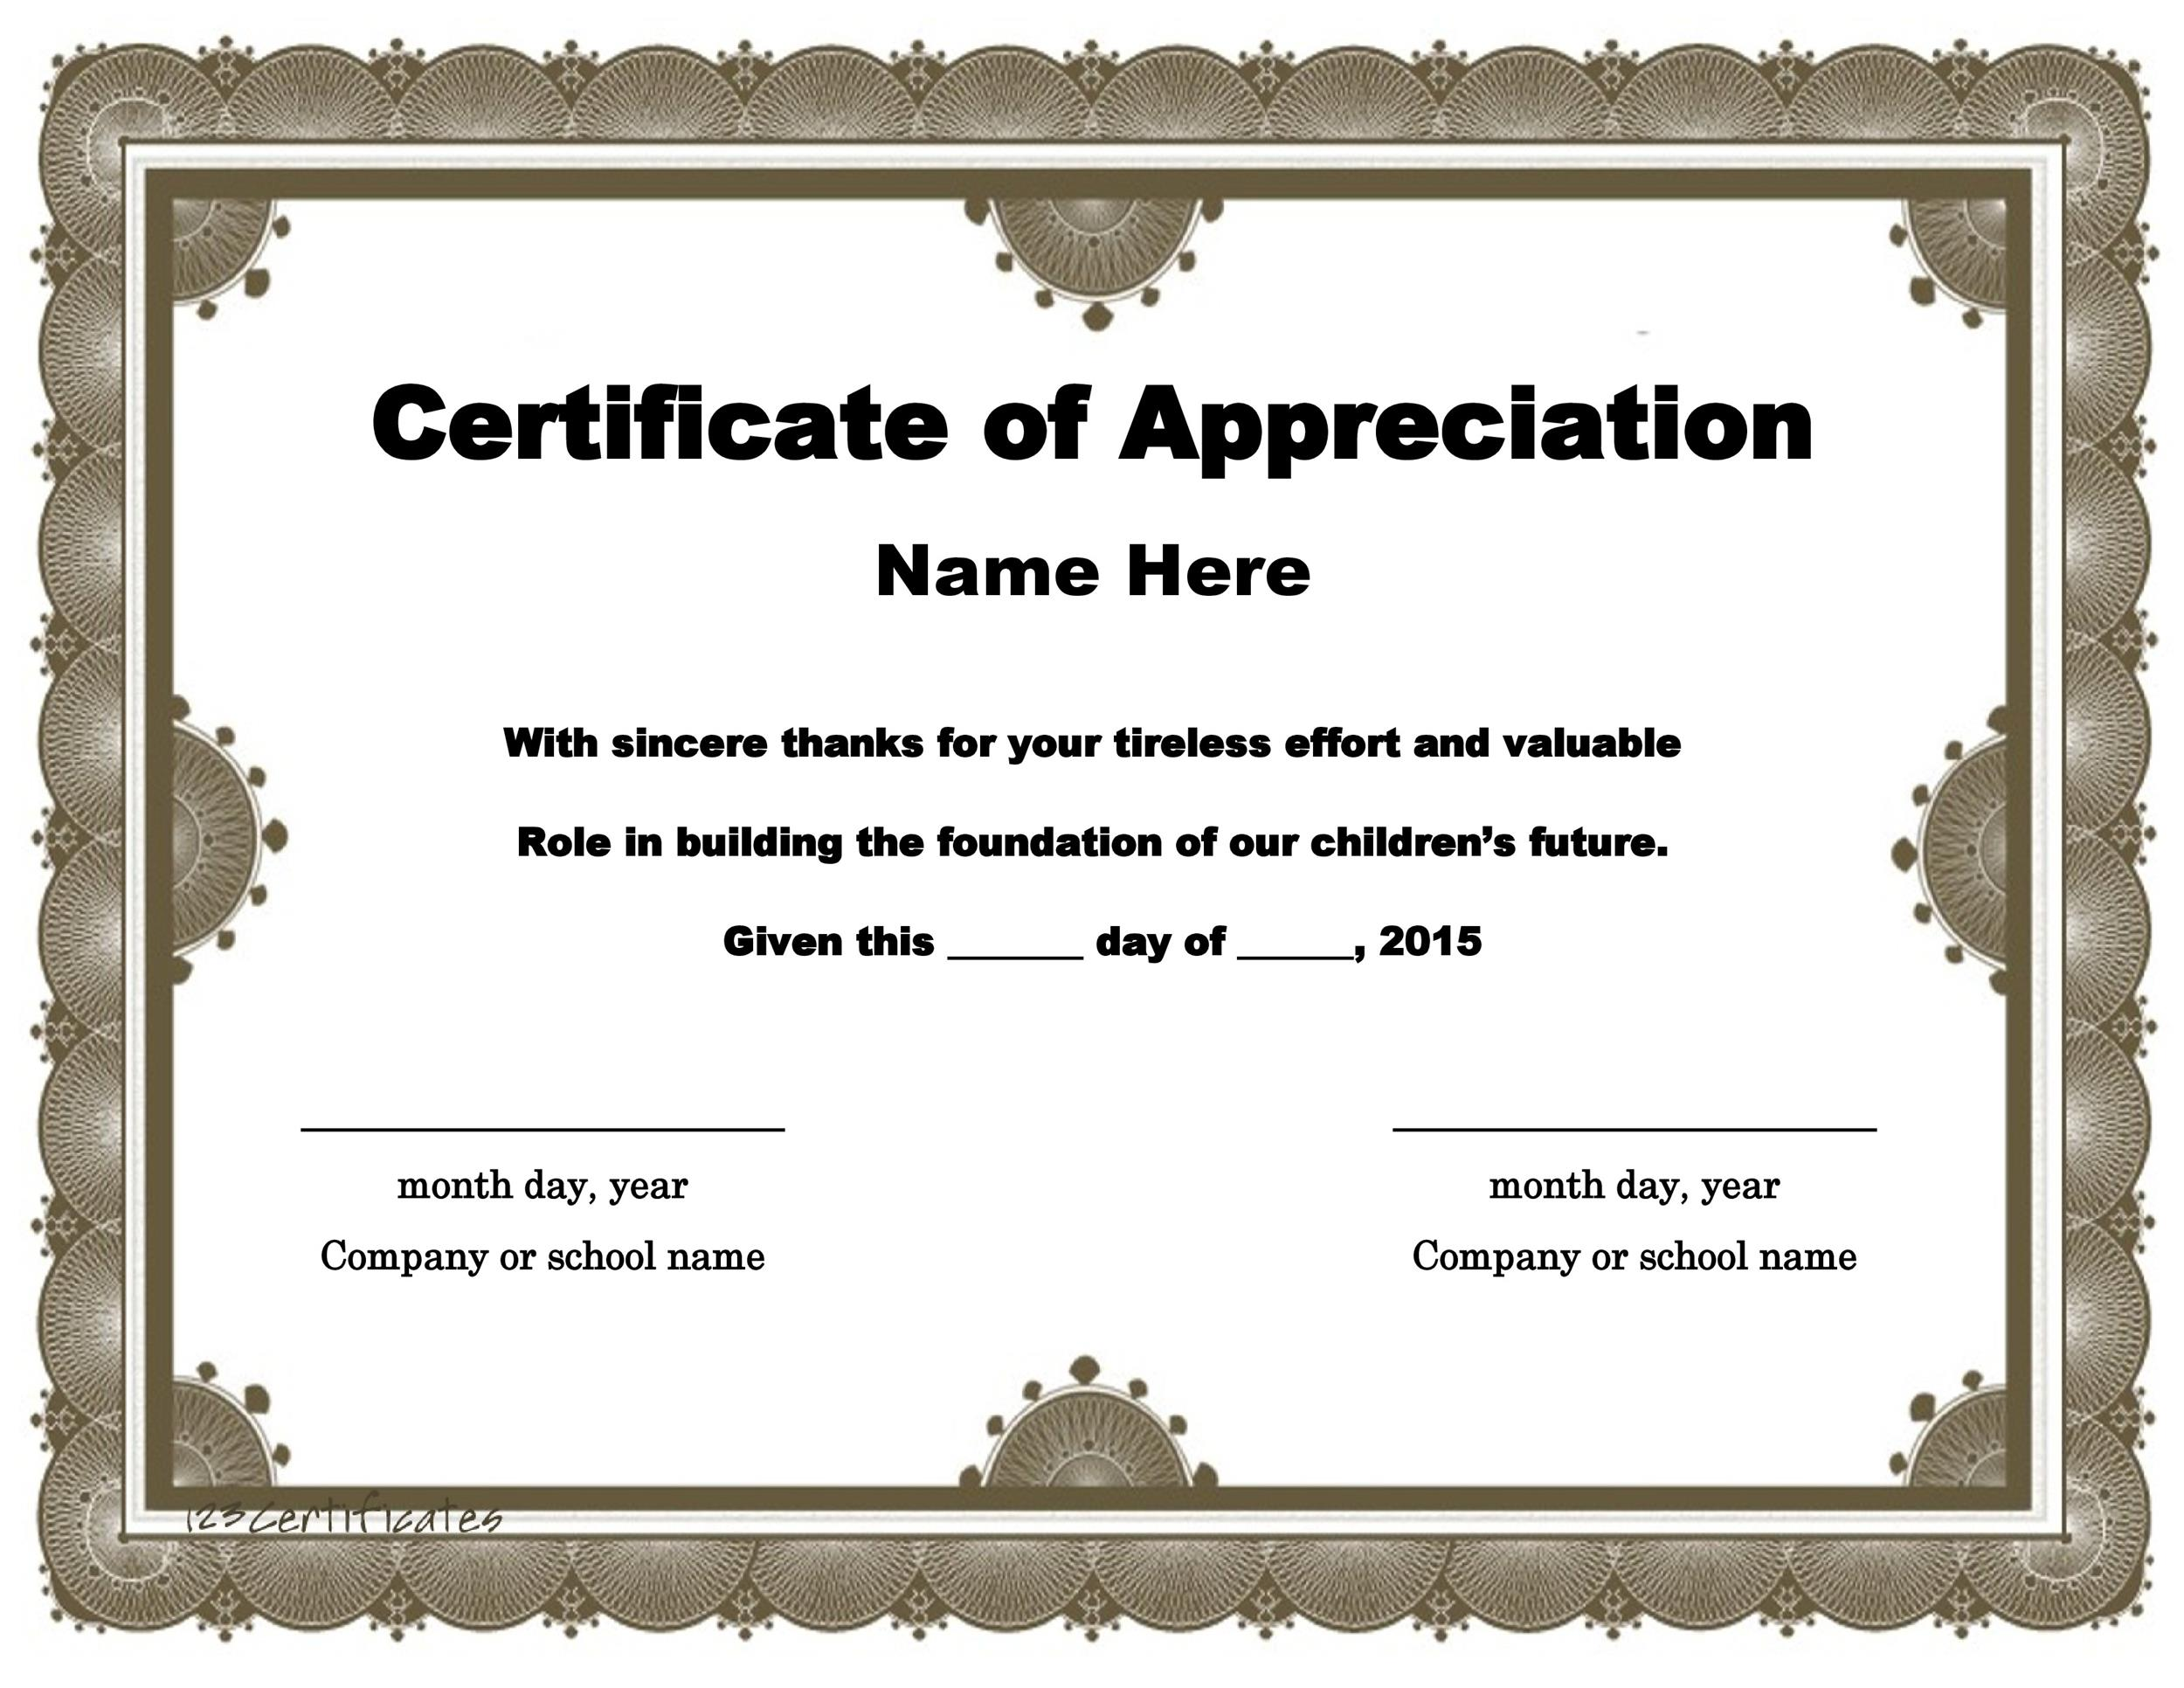 30 free certificate of appreciation templates and letters printable certificate of appreciation 03 yadclub Image collections